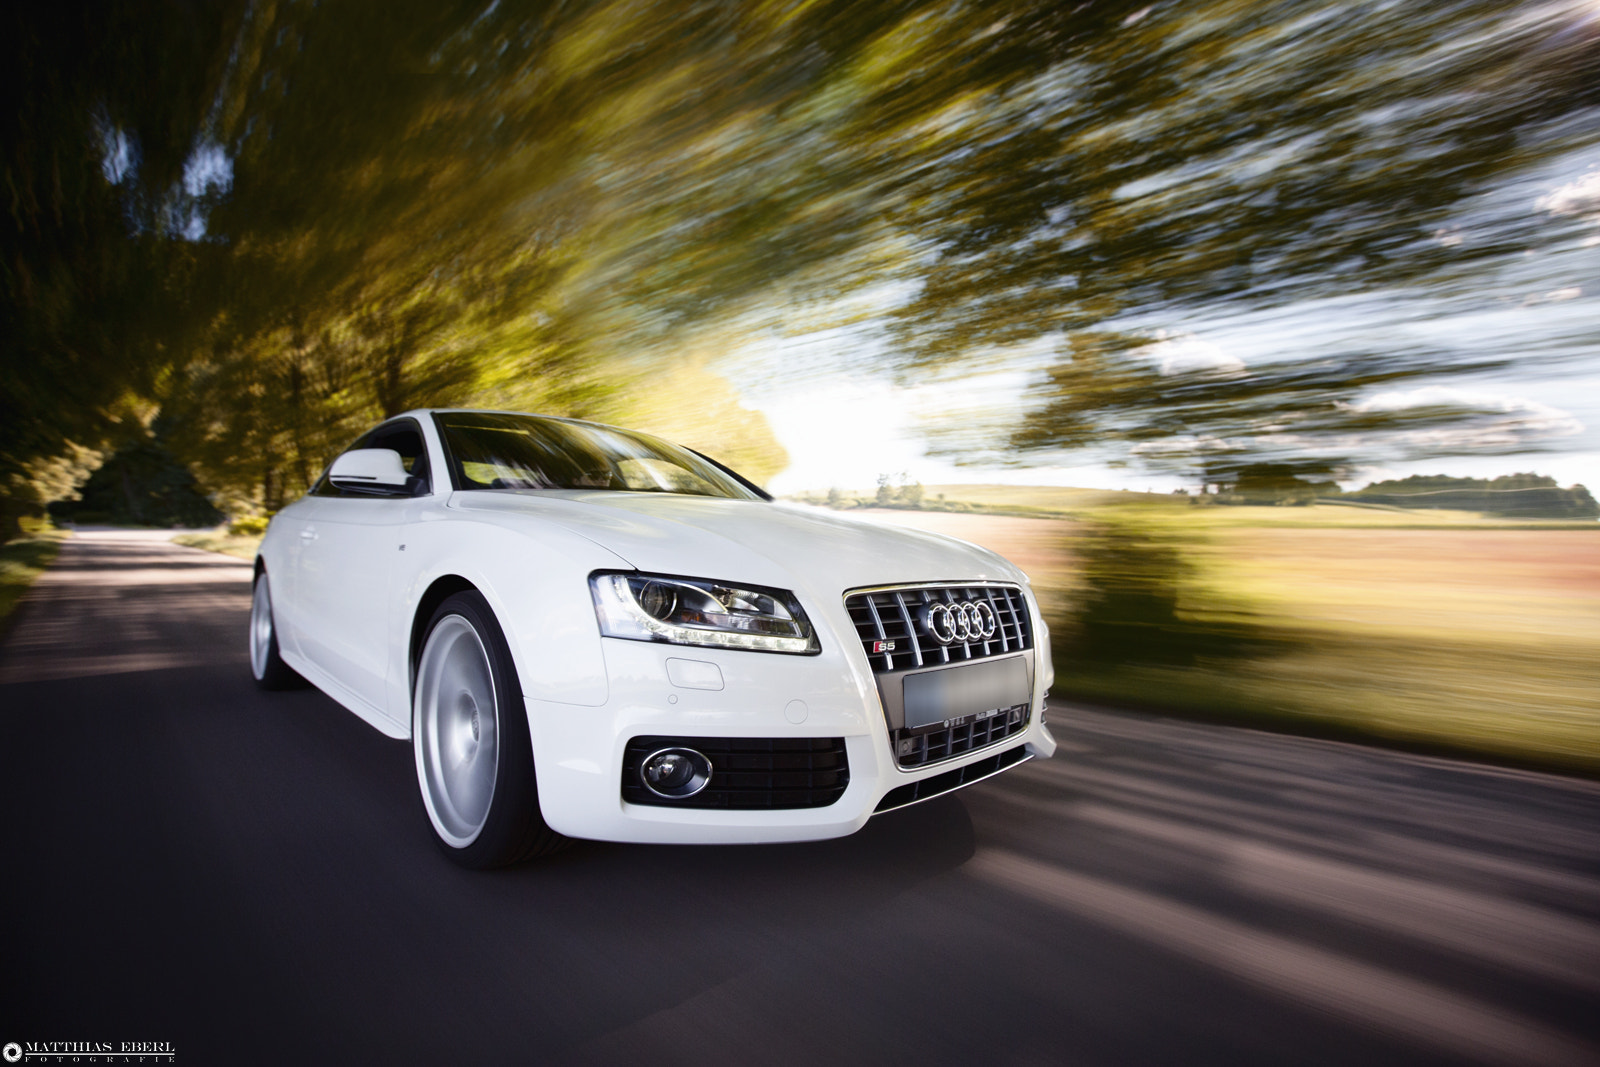 Photograph Audi S5 by Matthias Eberl on 500px